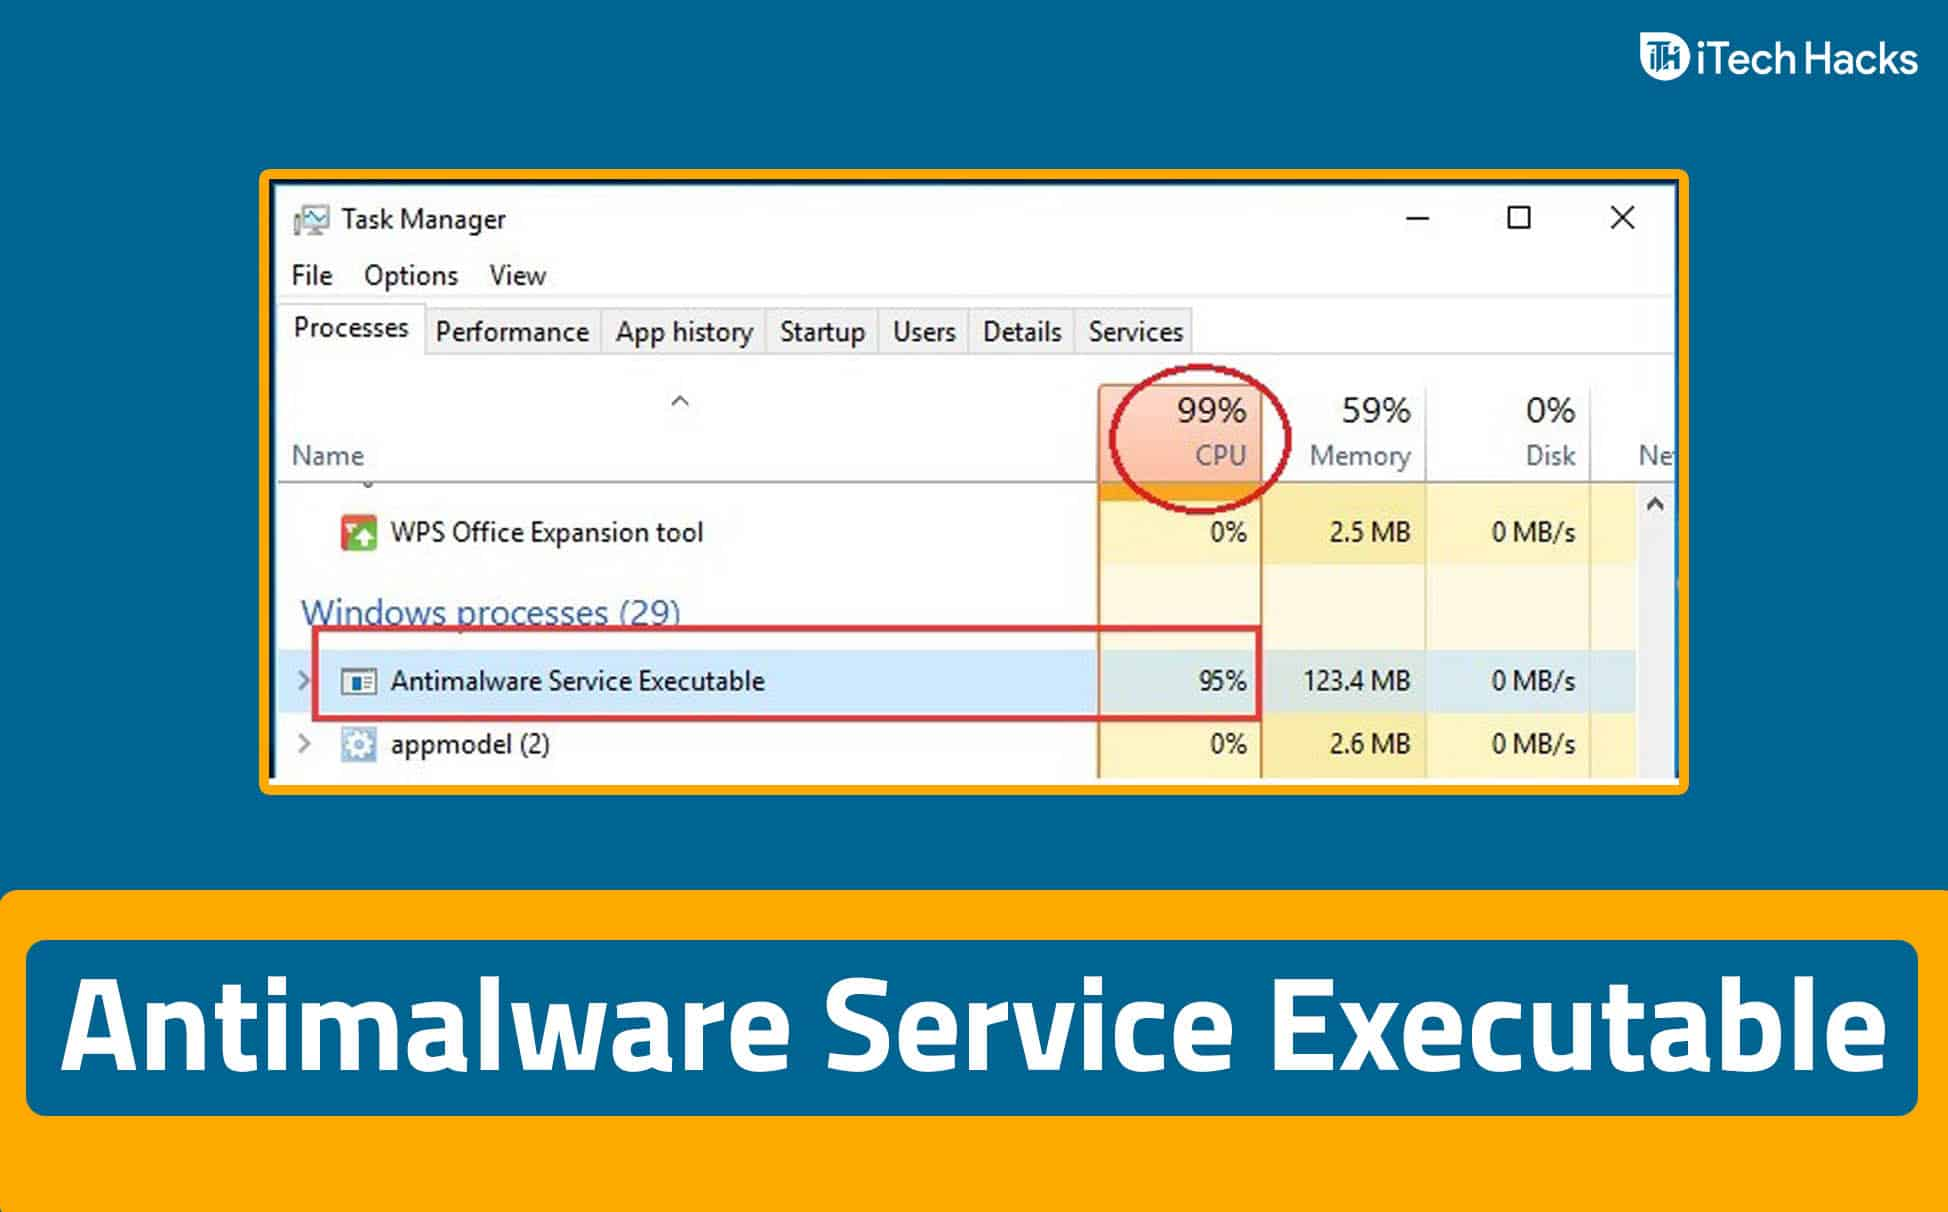 How to Deal with 'Antimalware Services Executable' Substantial CPU (3-Operating-Ways)